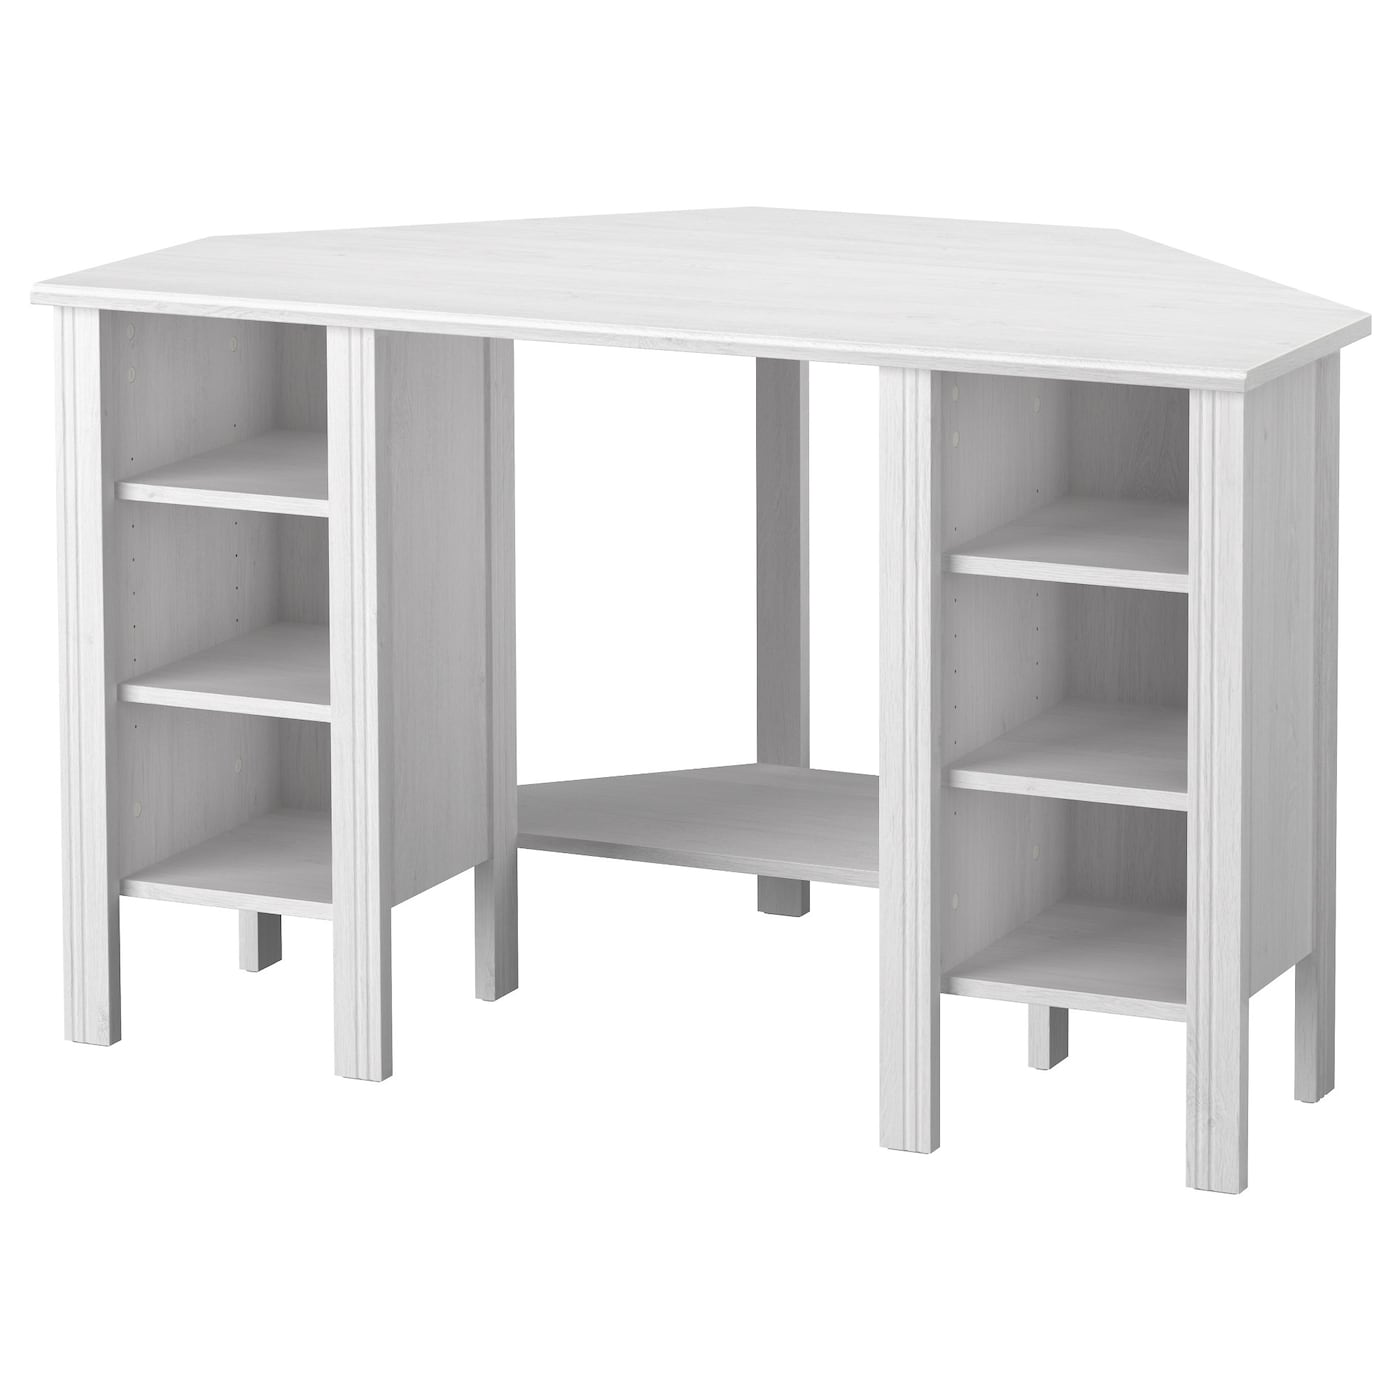 in a shelves with ideas shelf office shelving desk utah built